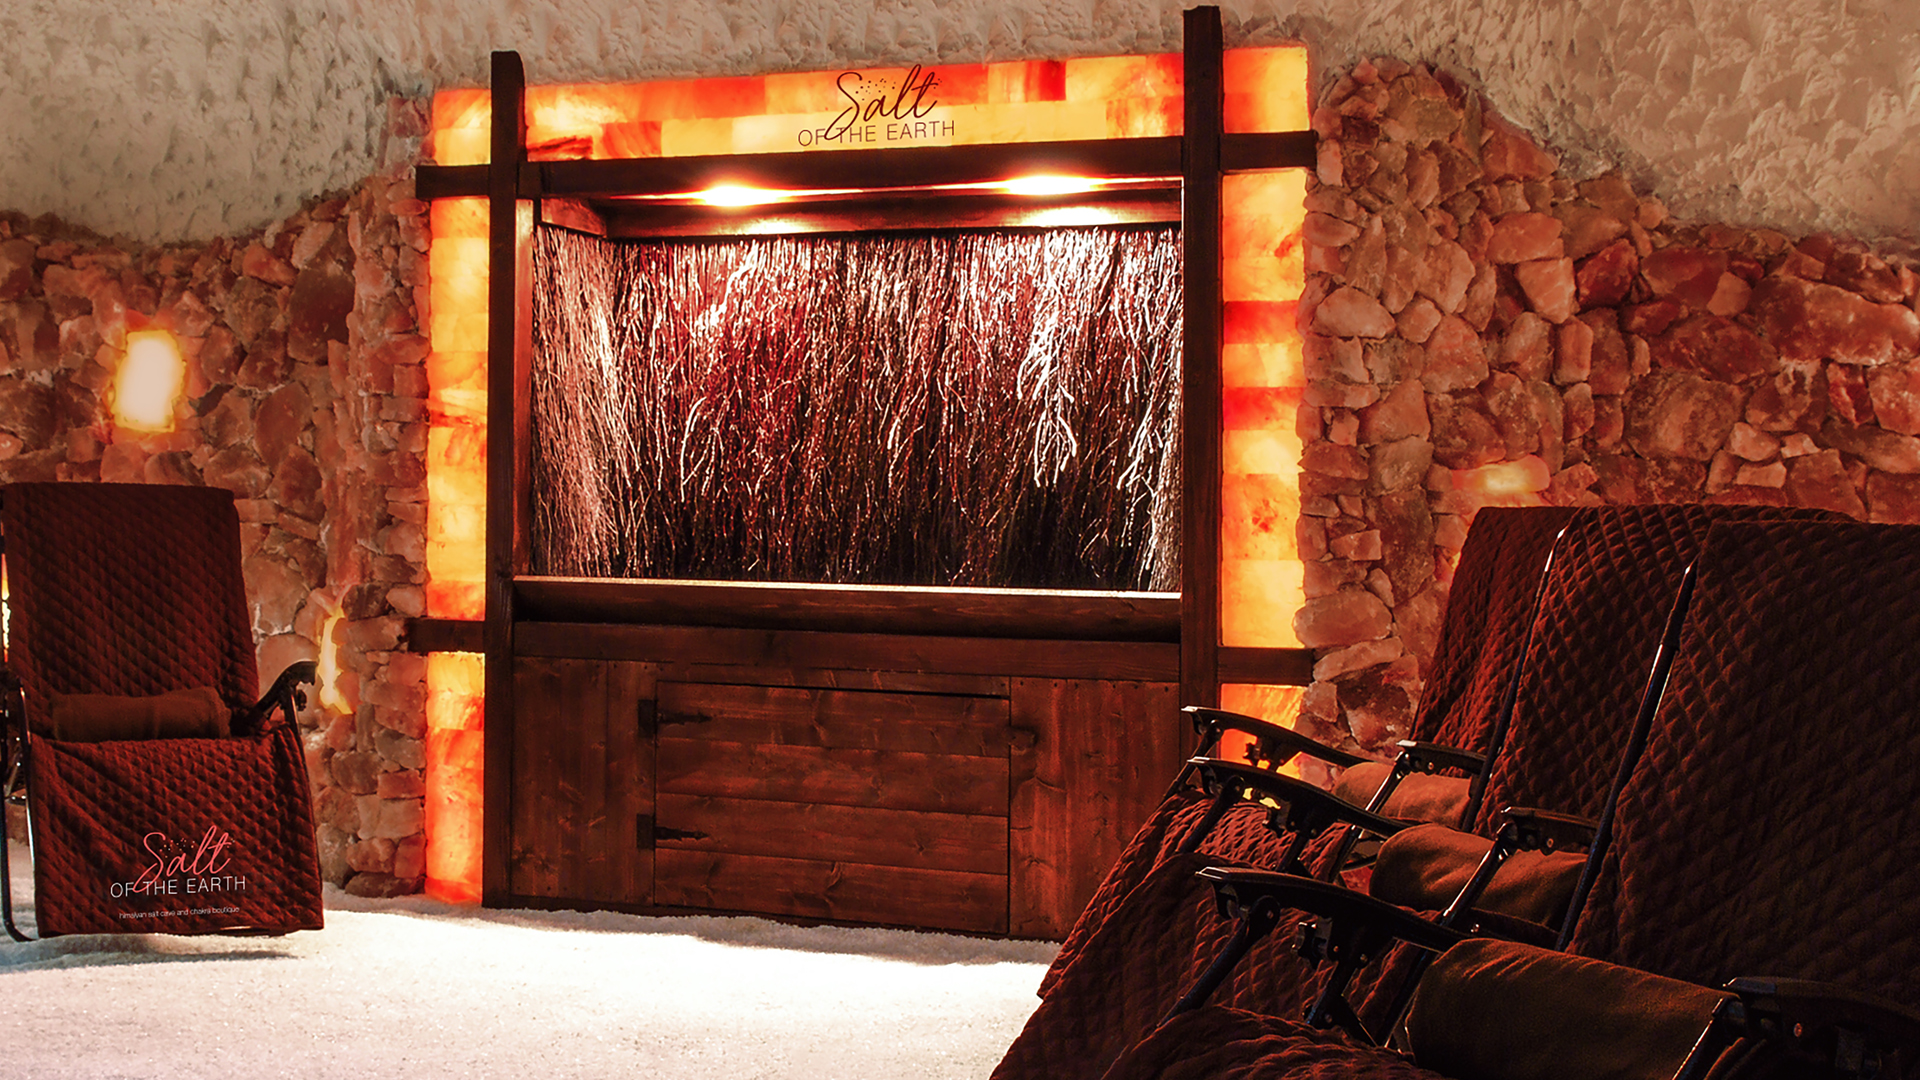 Salt of the Earth himalayan largest salt cave in pennsylvania, chakra boutique graduation tower, relax in zero-gravity chairs and comfy blankets